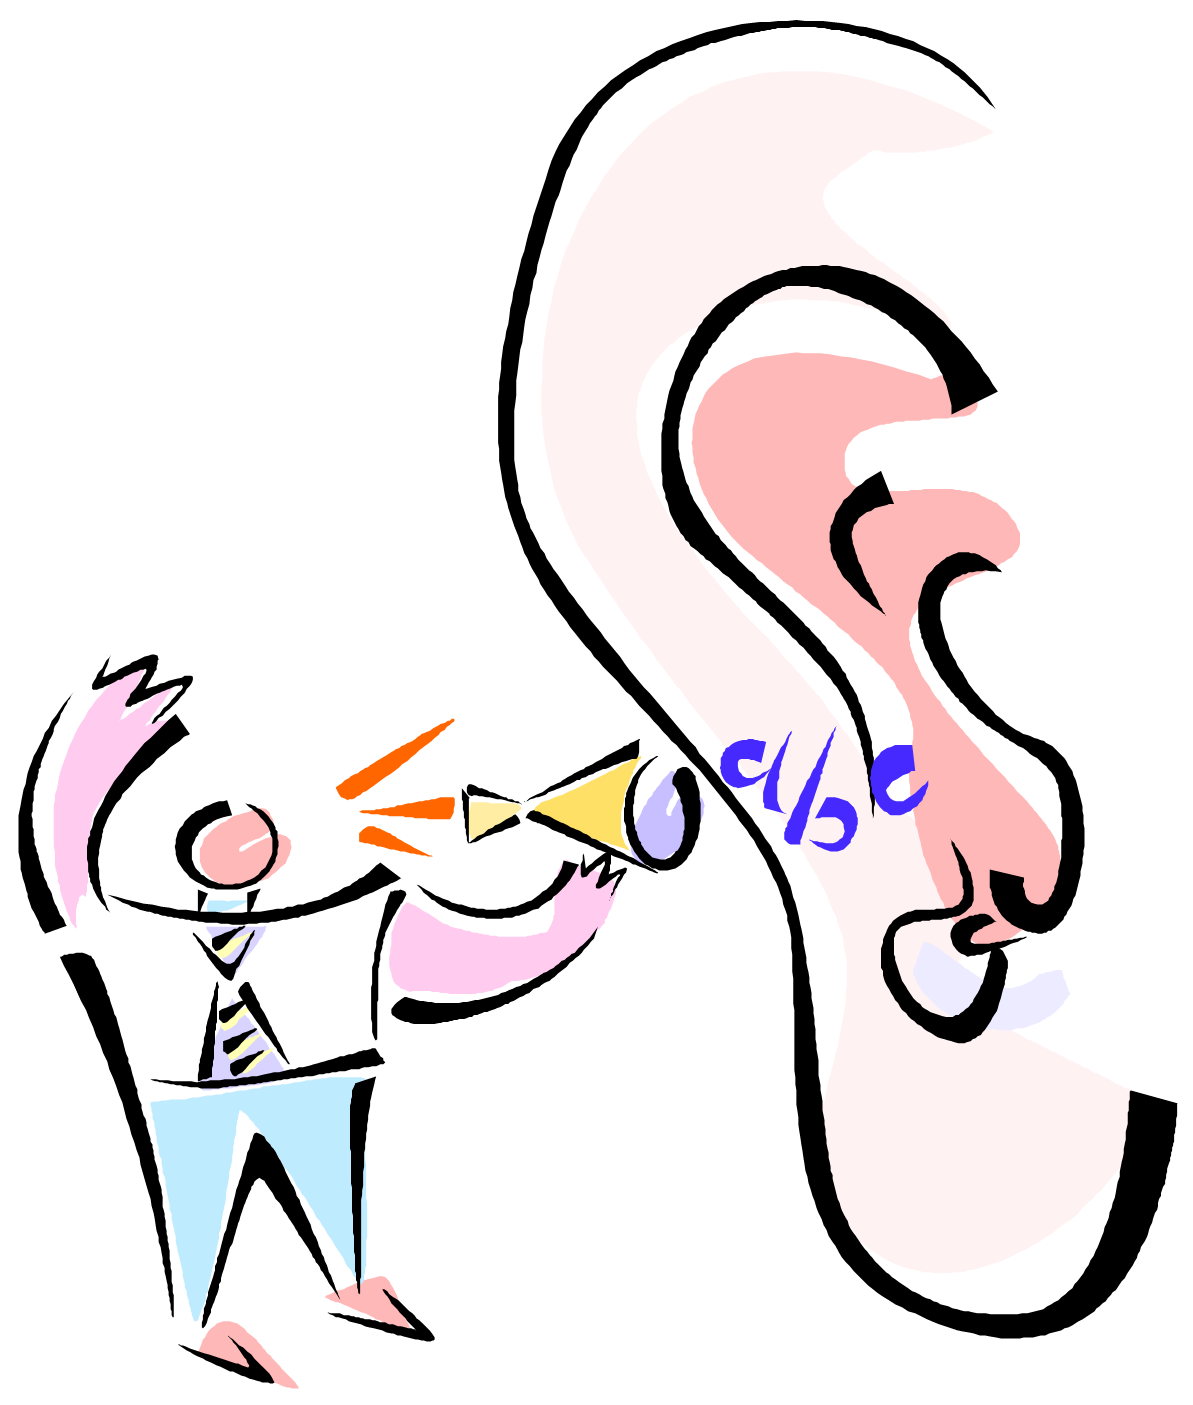 Clipart ear empathetic listening. The thin line between